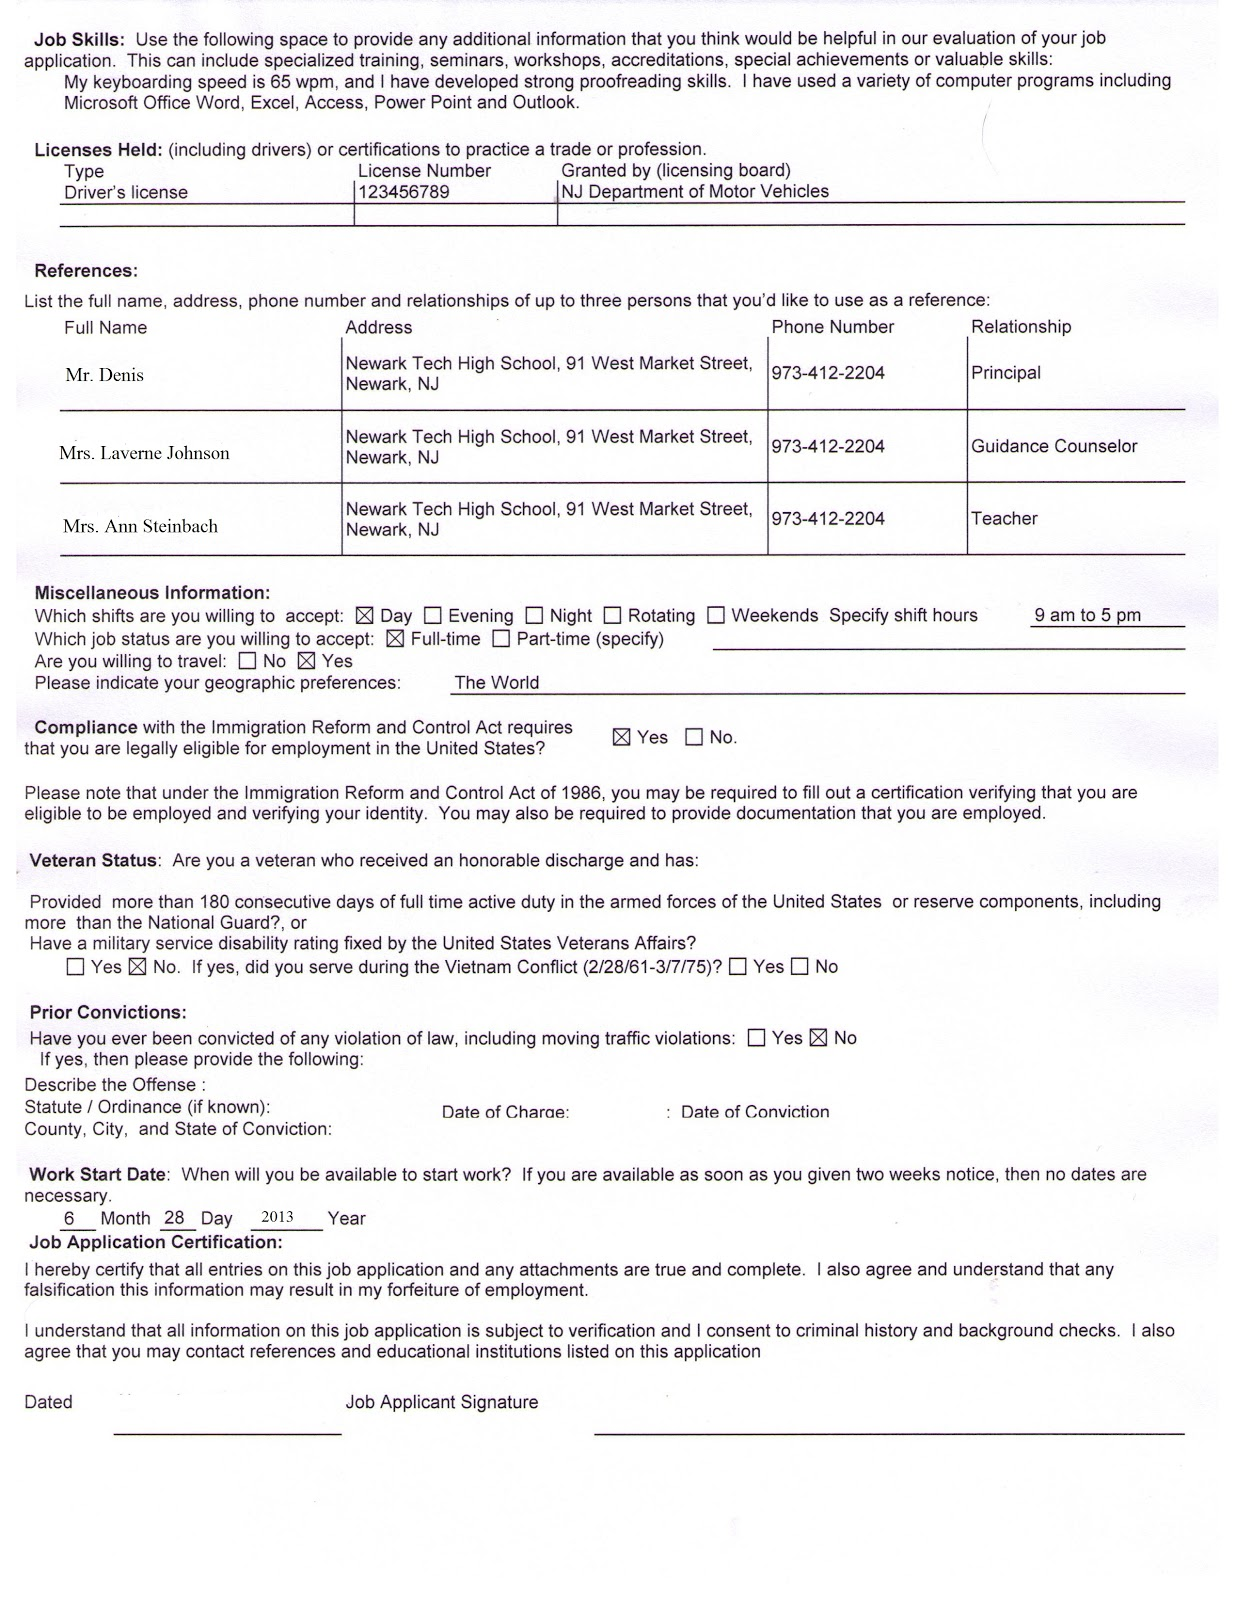 sample of job application